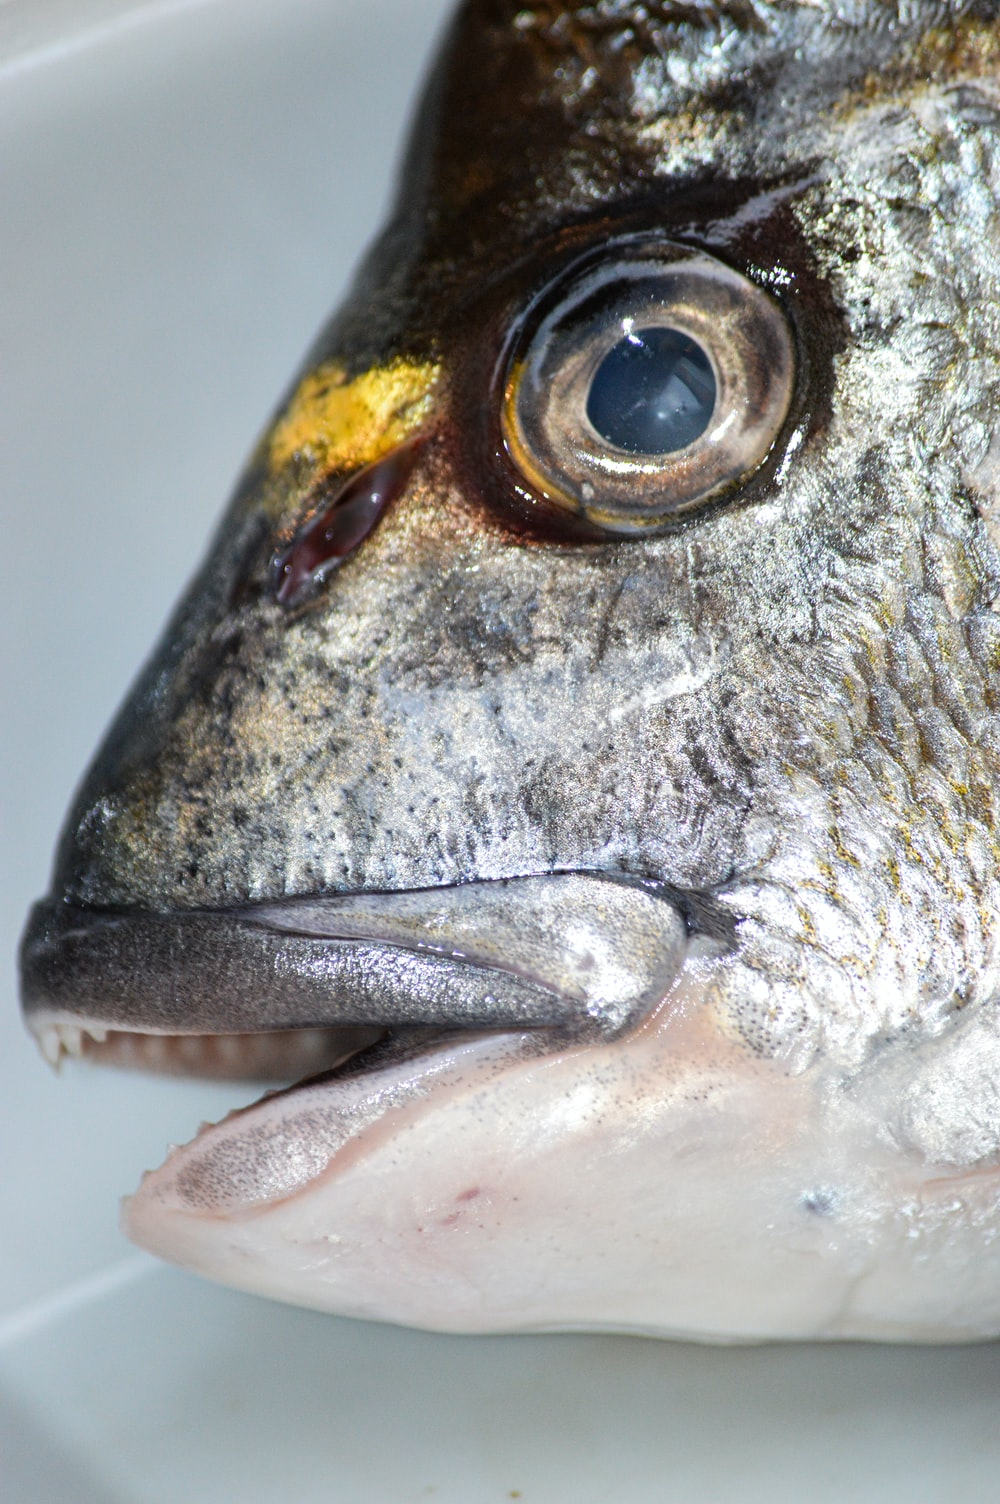 grey and yellow fish in close up photography